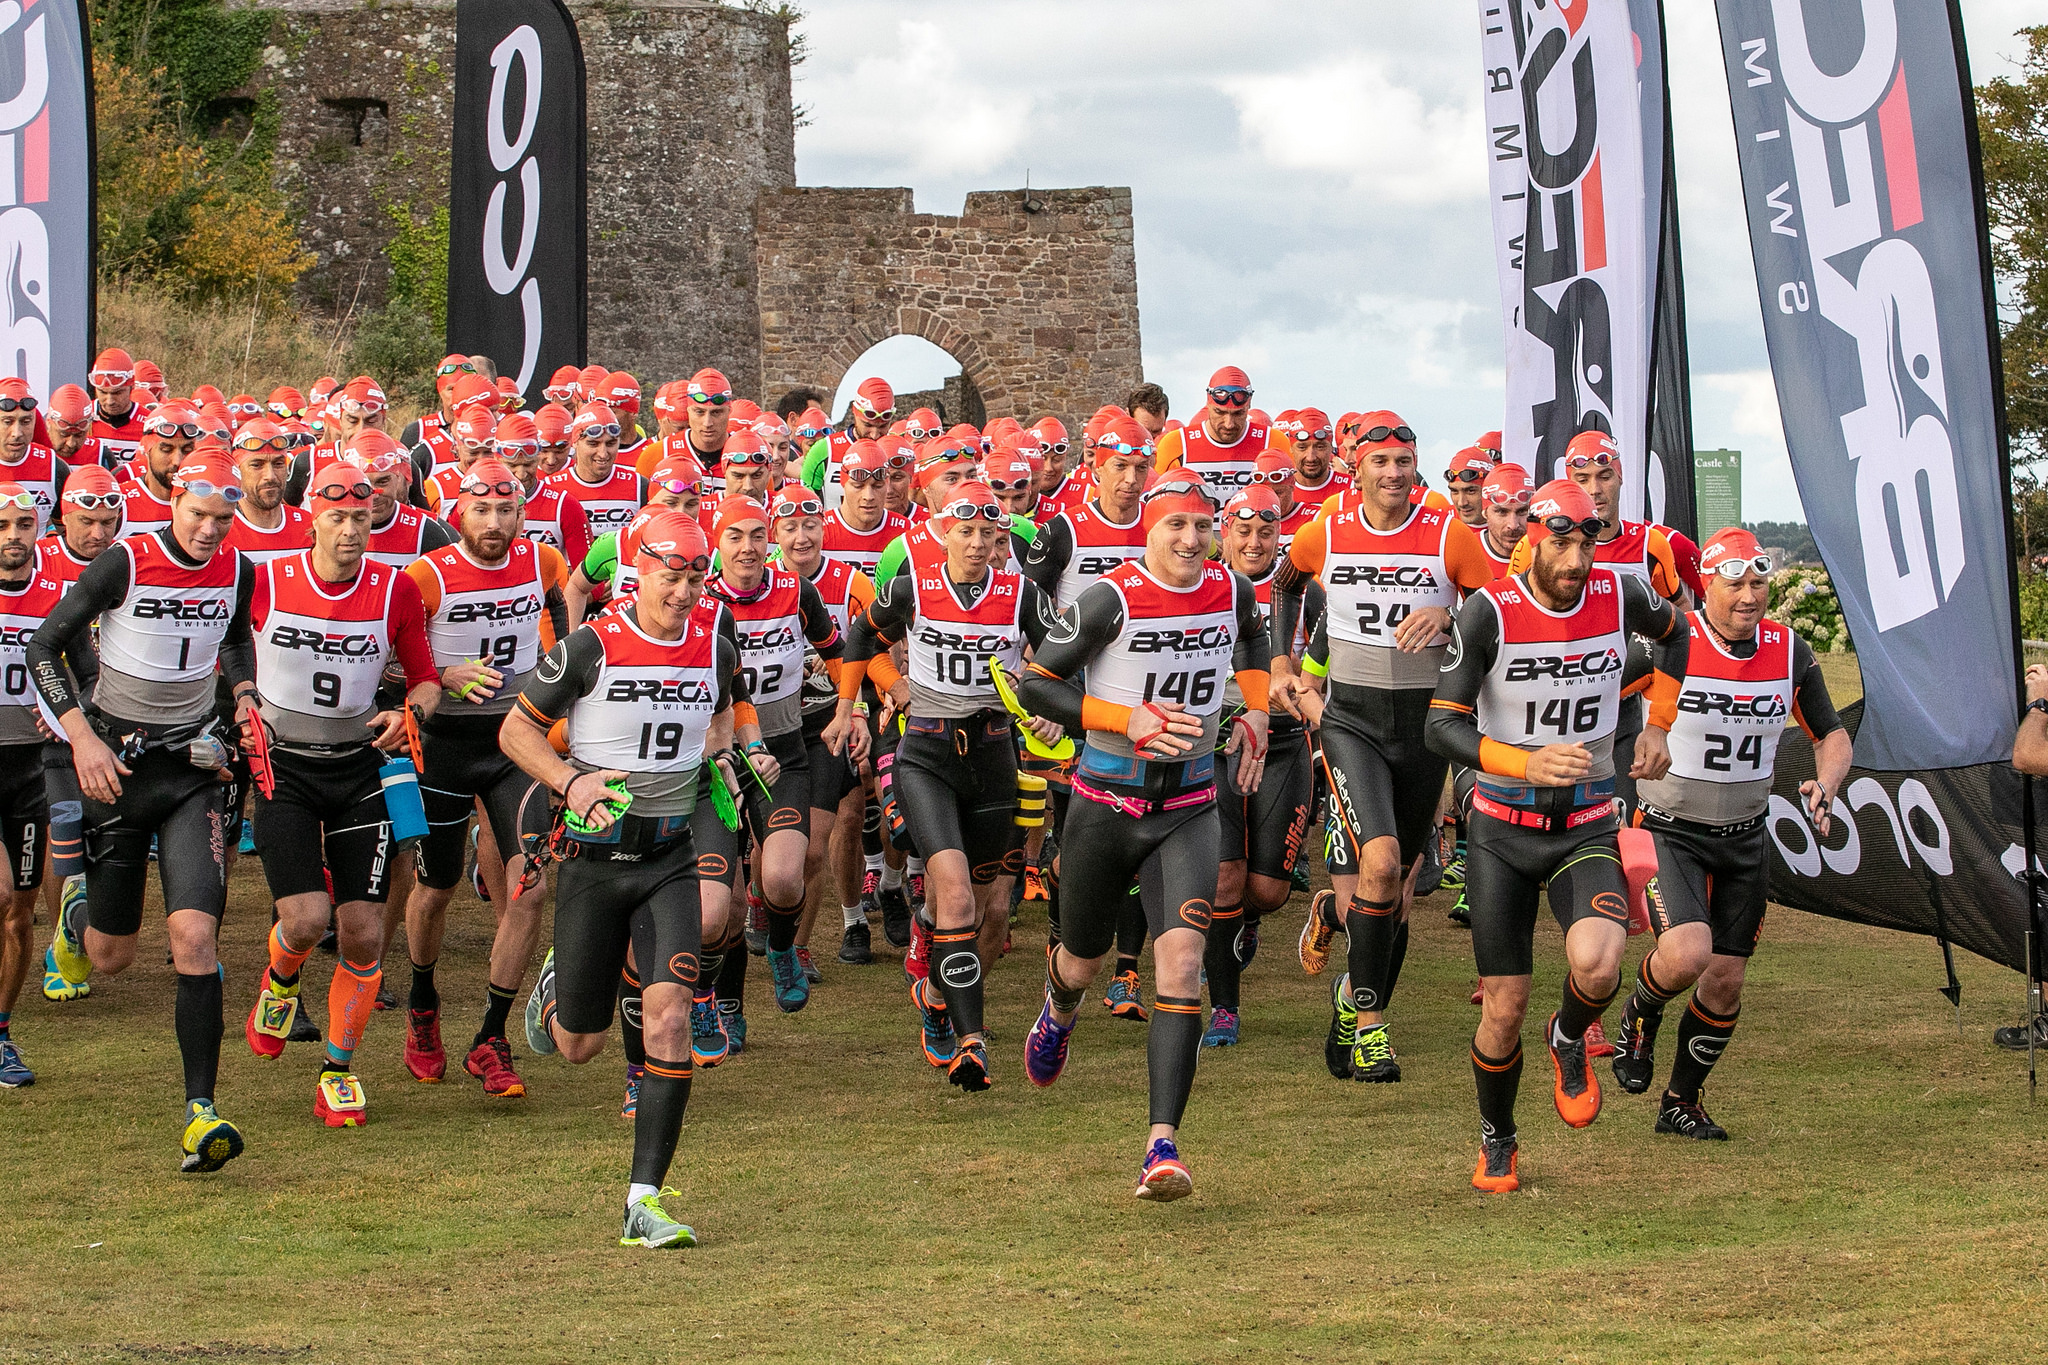 Sign up for the Breca Jersey Sprint 2019 - 7th September 2019, 19km swimrun. Sign up now to enjoy our early-bird rates!Early-bird 1: £225 per team (Ends 1st March 2019)Early-bird 2: £240 per team (Ends 30th April 2019)Early-bird 3: £255 per teamEntry fees are for a team of two+3.75% Trumin processing fee for all tiers